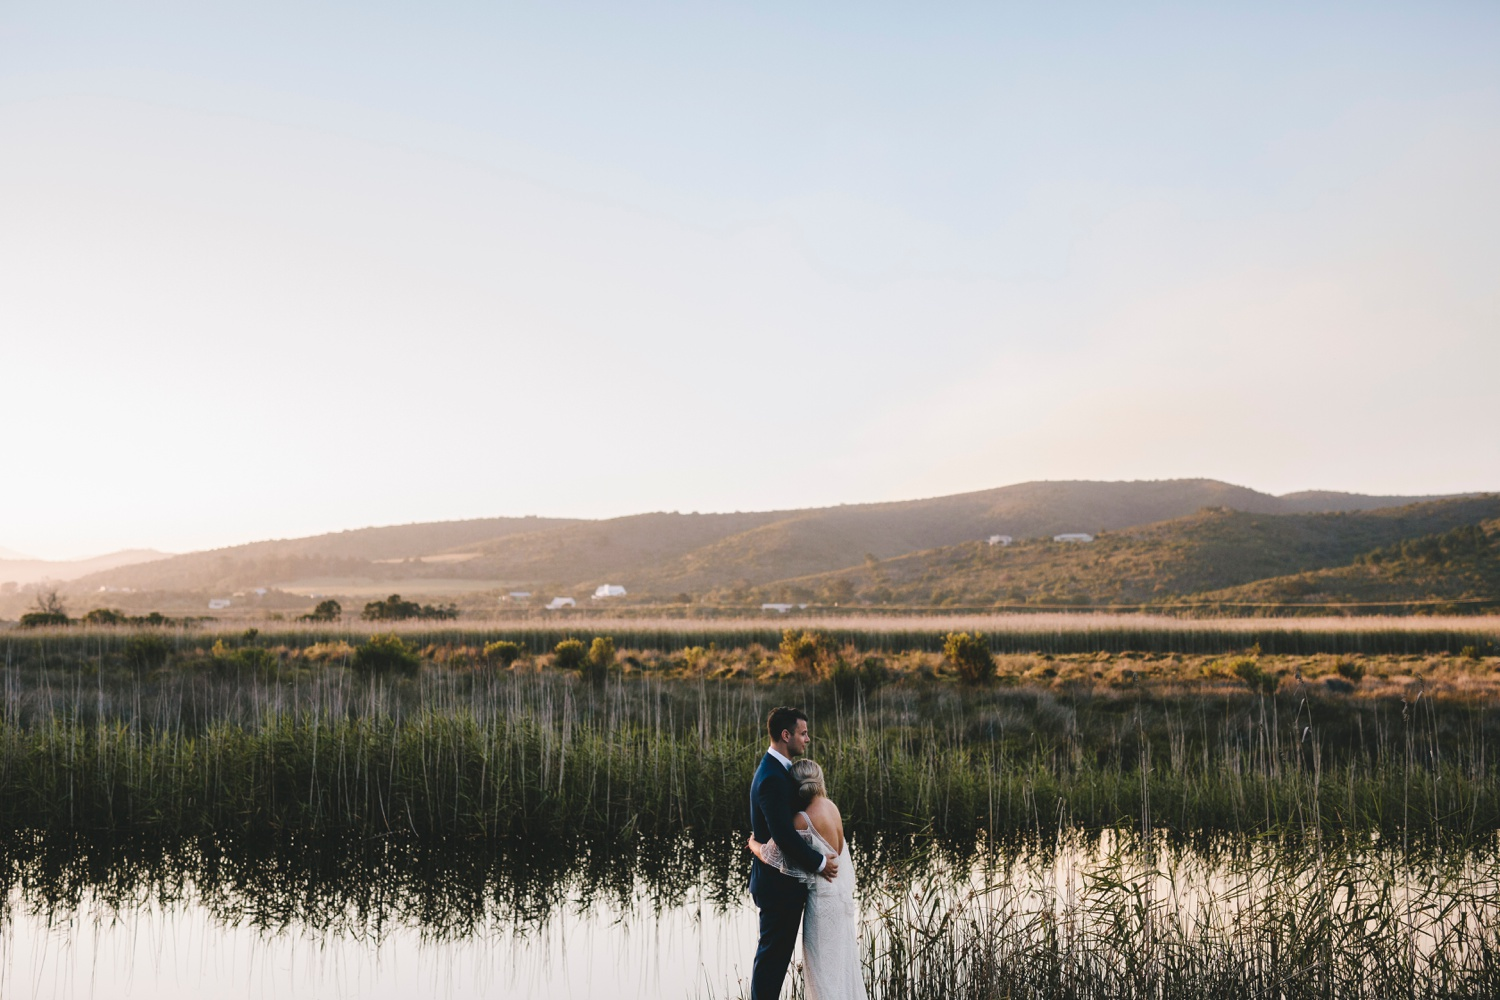 charlie_ray_photography_runaway_romance_elopement_emily_moon_plett_simple_boho_wedding_south_africa_bohemium_0105.jpg